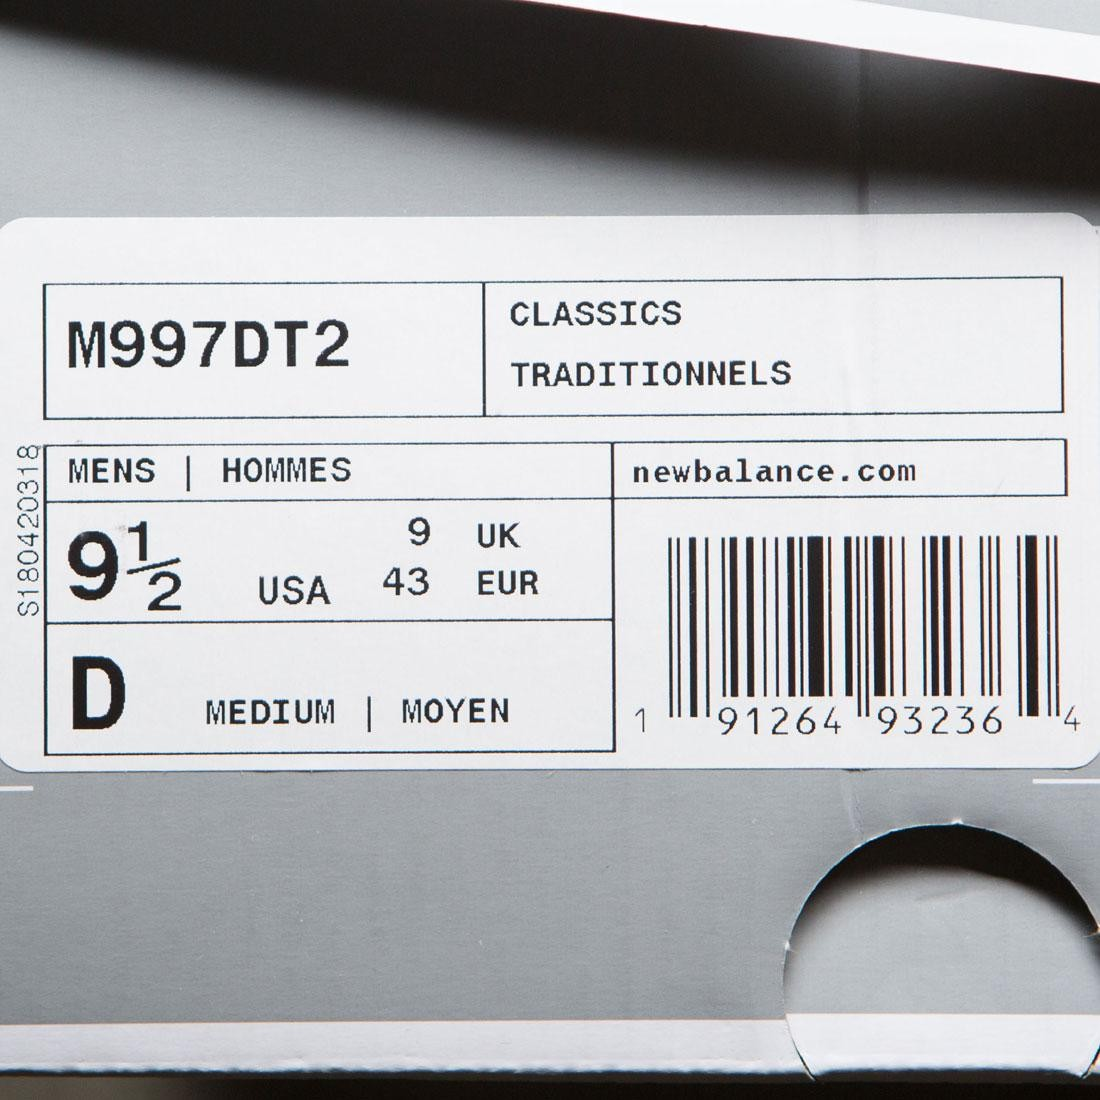 nouvel équilibre hommes 997 couleurs m997dt2 in - made in m997dt2 usa argent argent Hommes the 323097